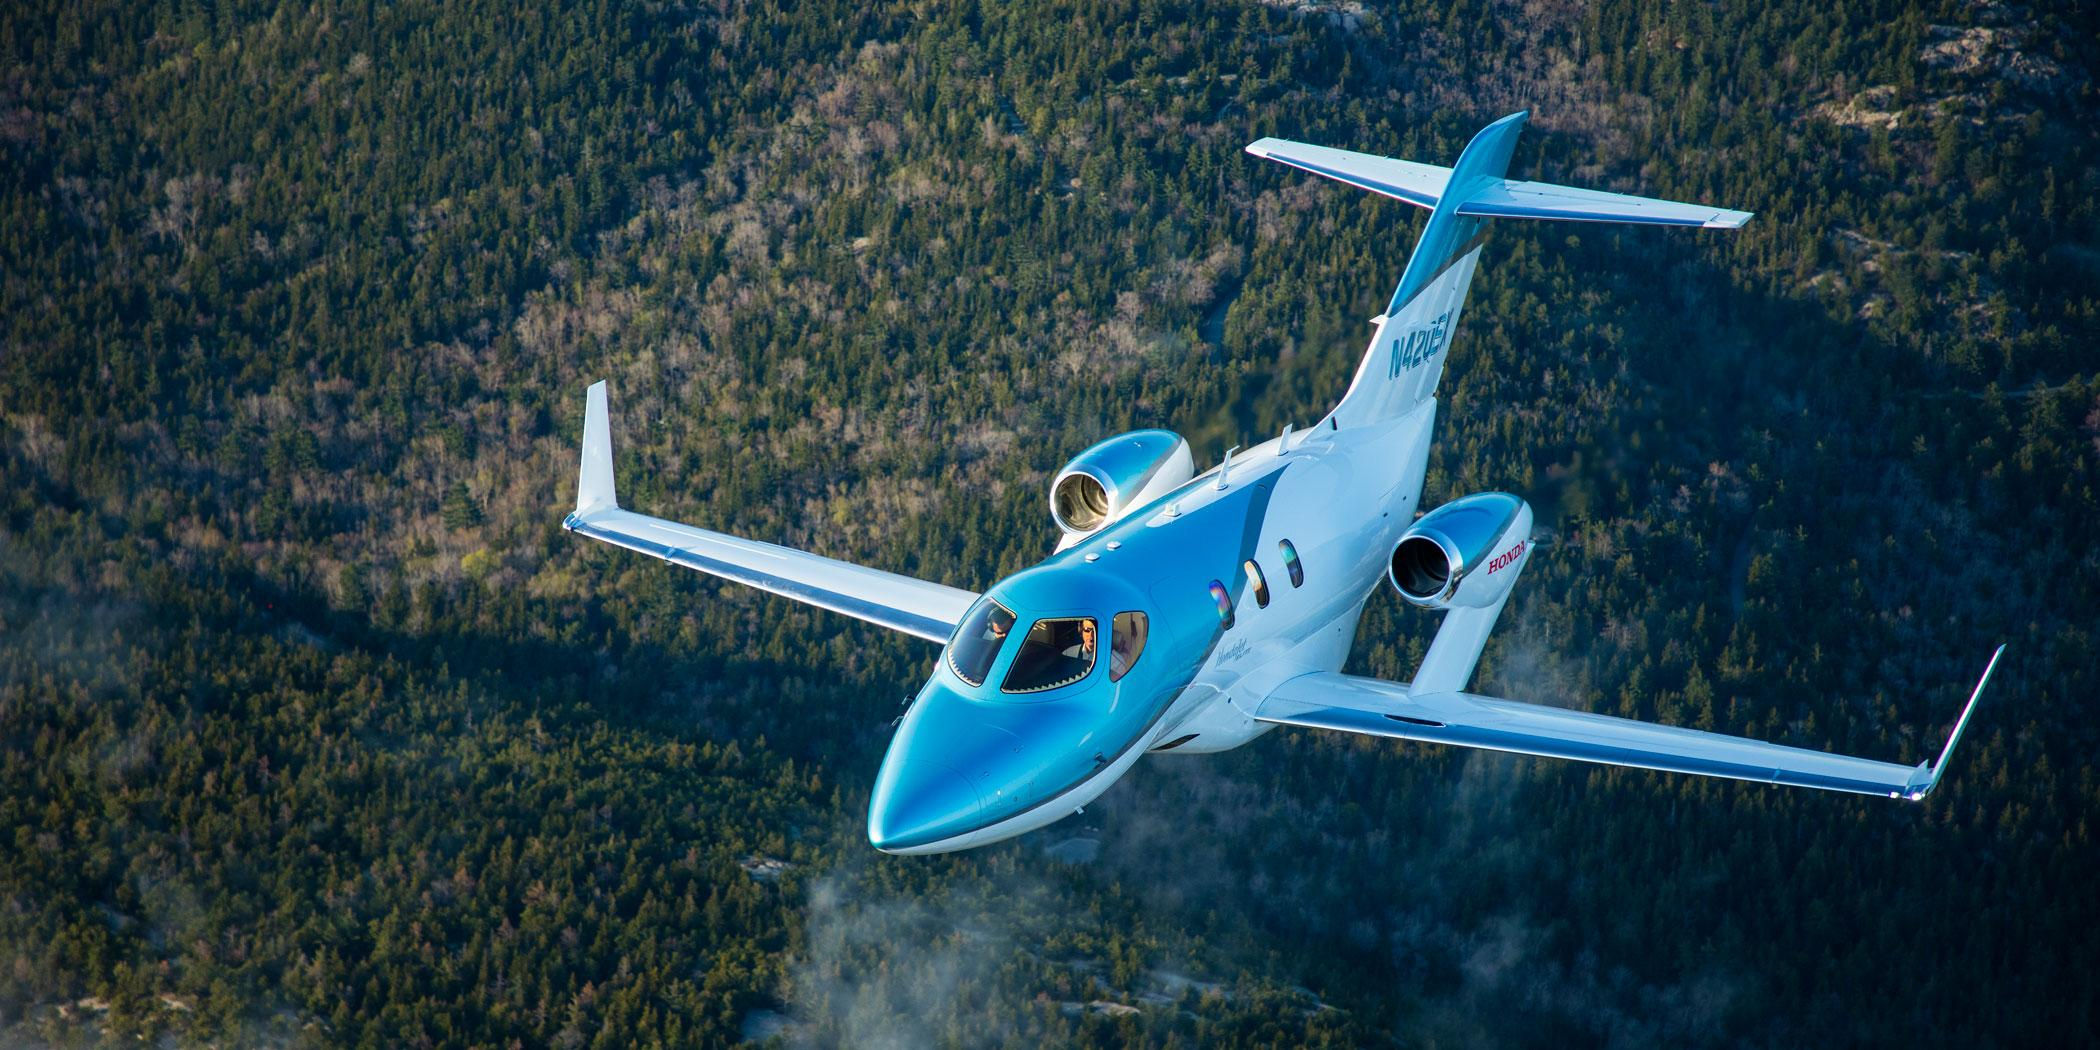 HondaJet Elite in flight